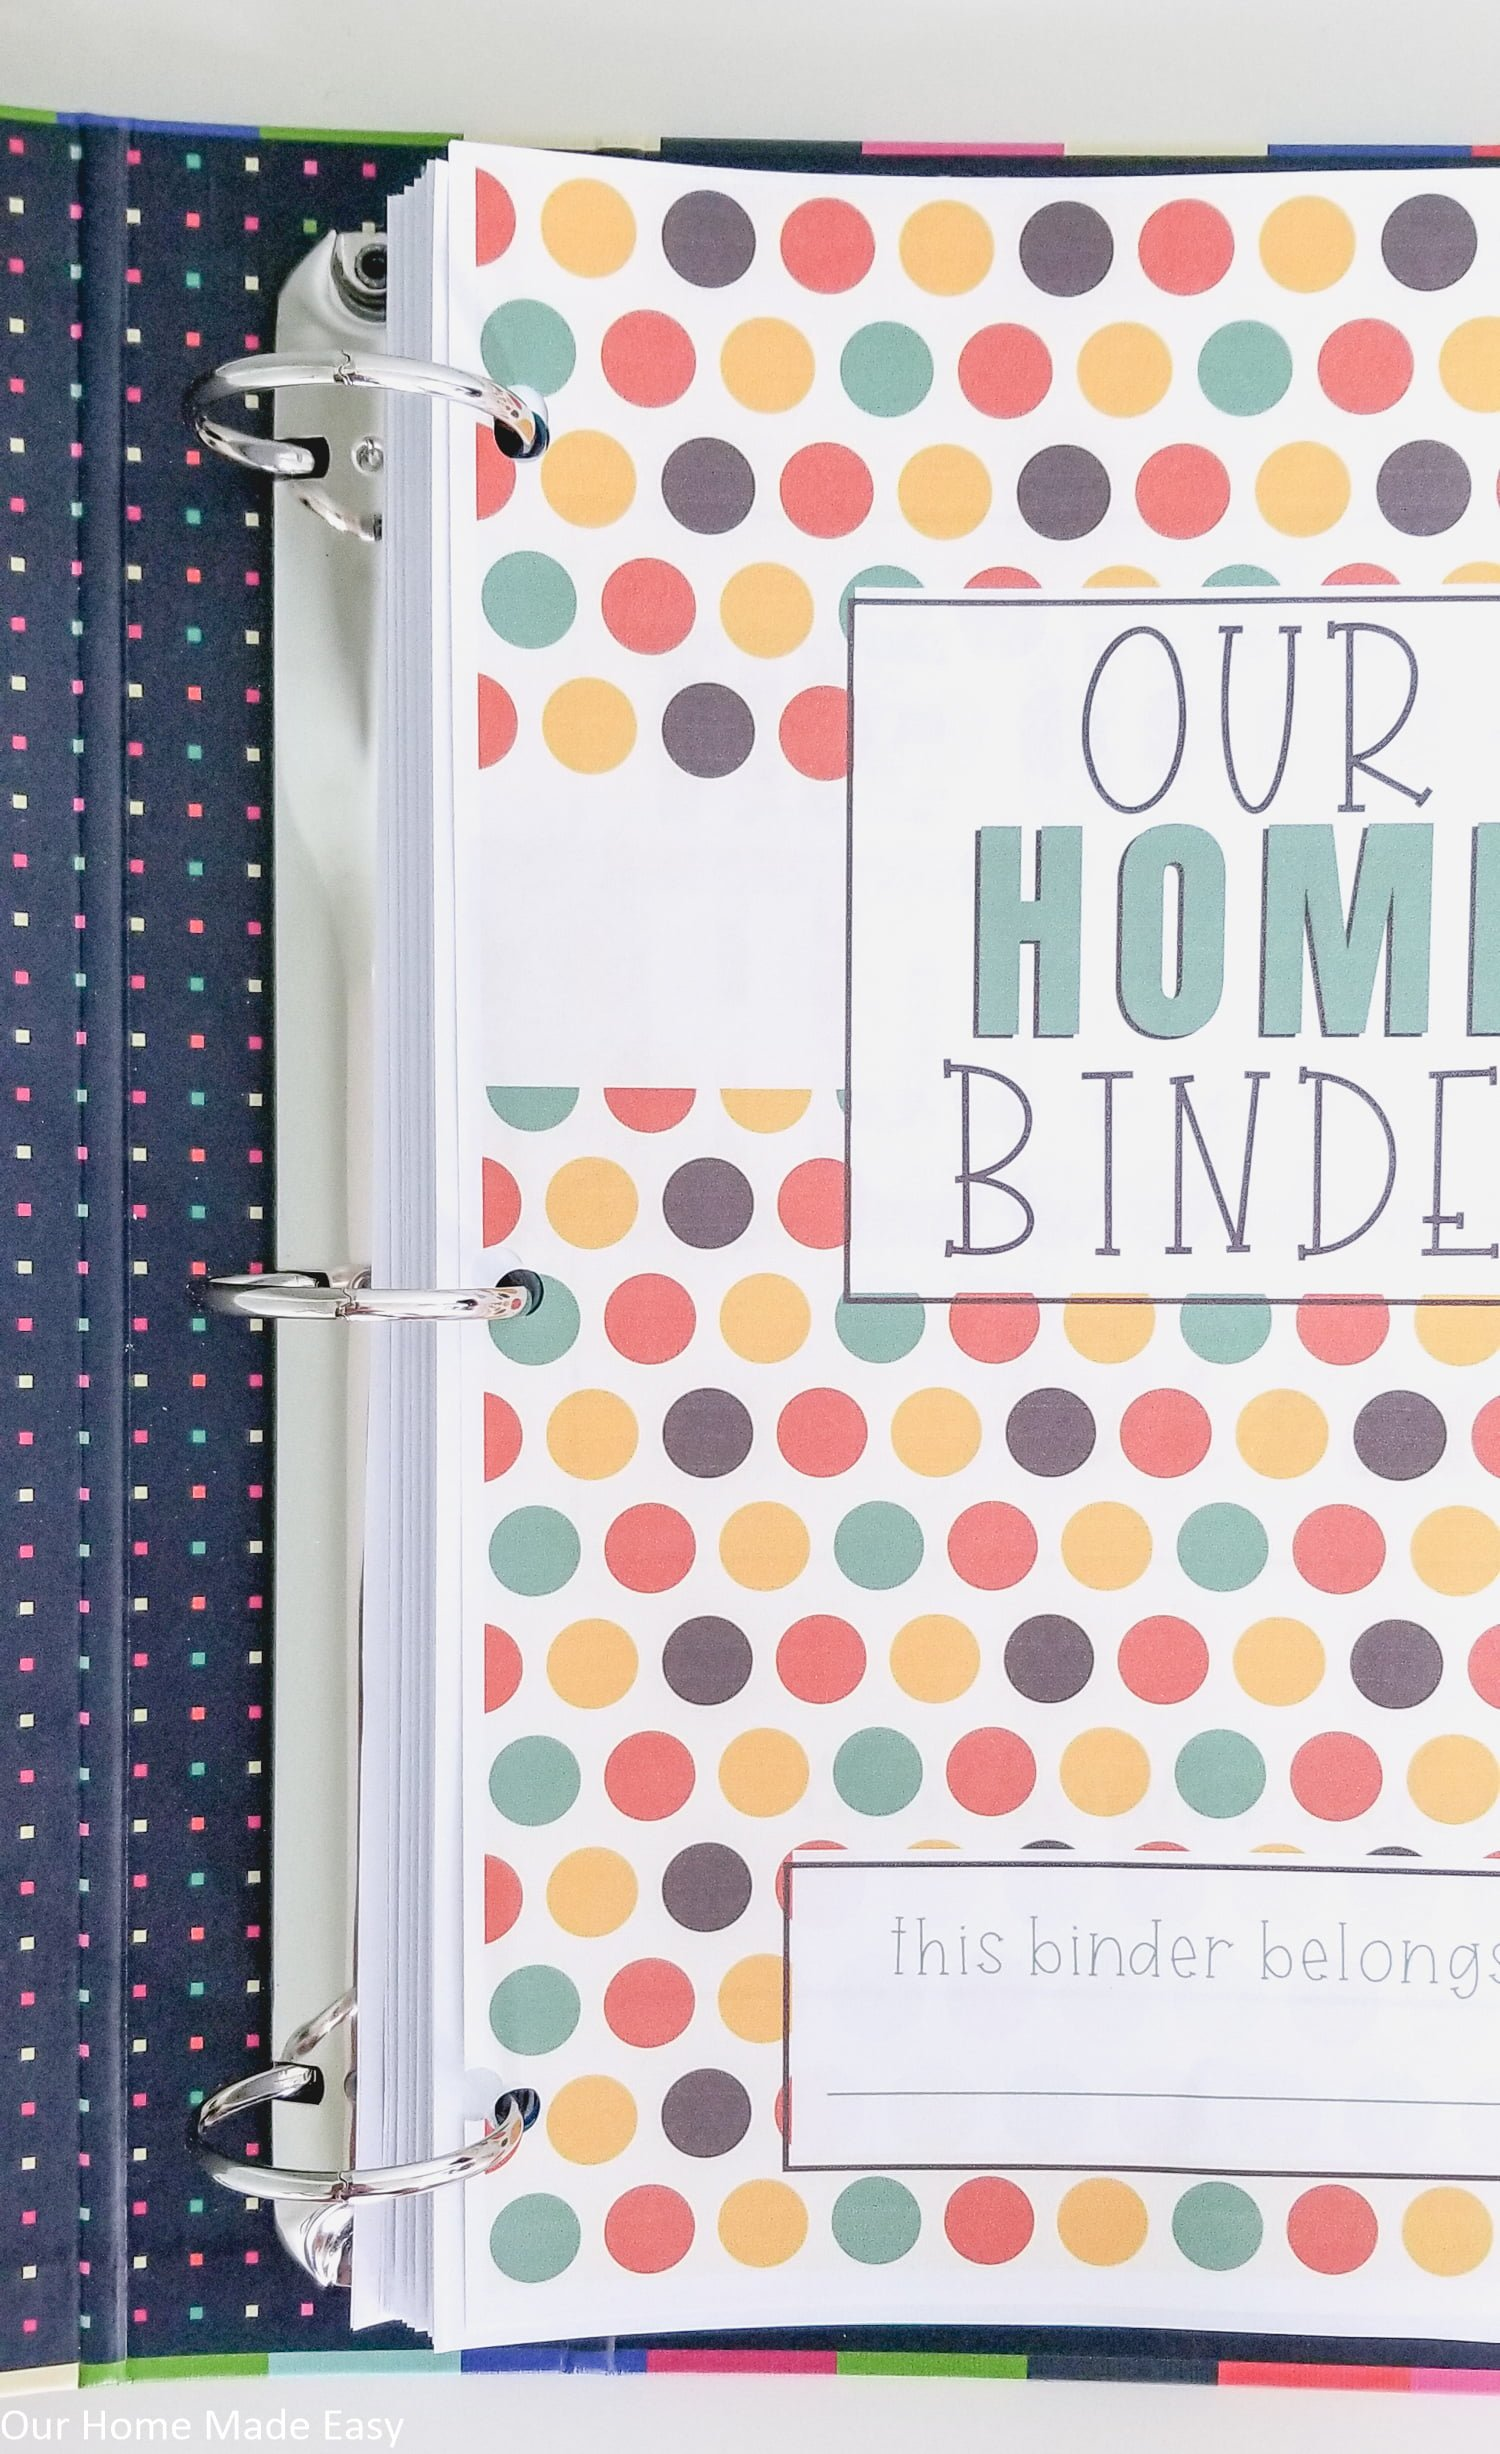 Get your home binder ready for fall with these free autumn binder covers